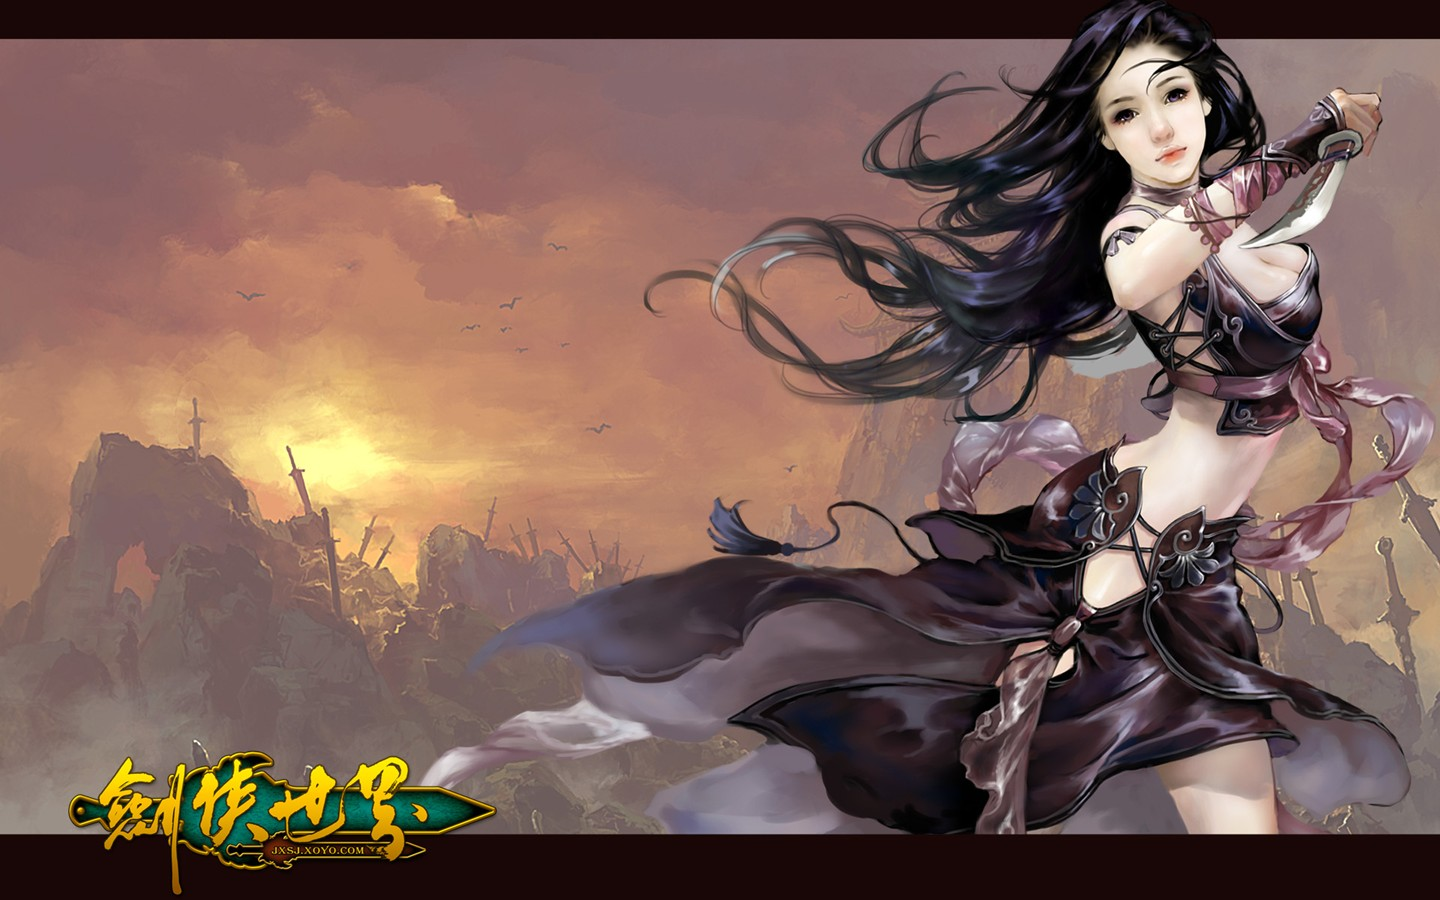 D of the swordsman in the world martial arts online game wallpaper 30254